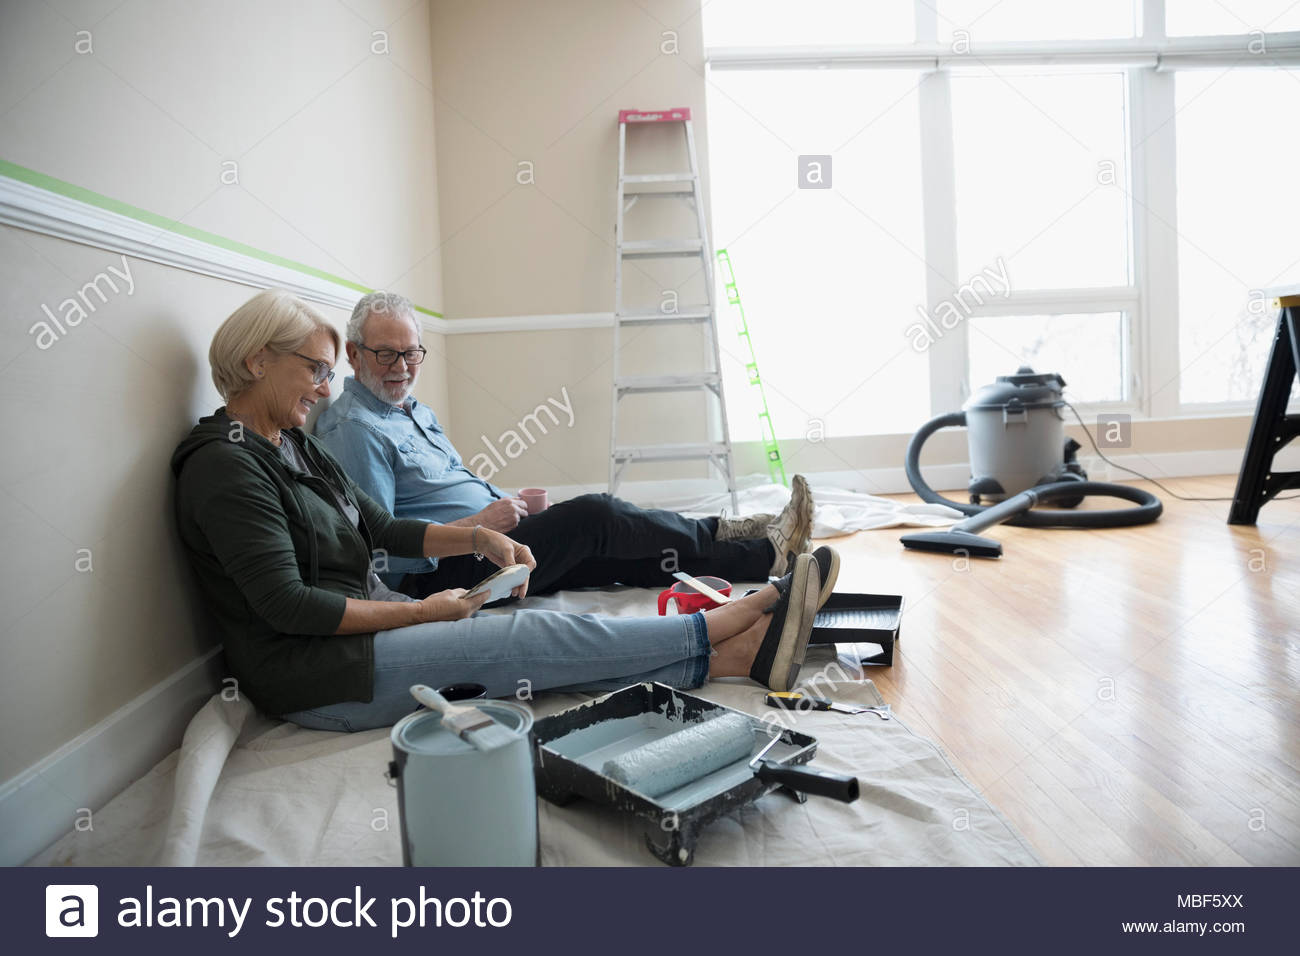 Senior couple preparing to paint in living room, looking at paint swatches, DIY - Stock Image